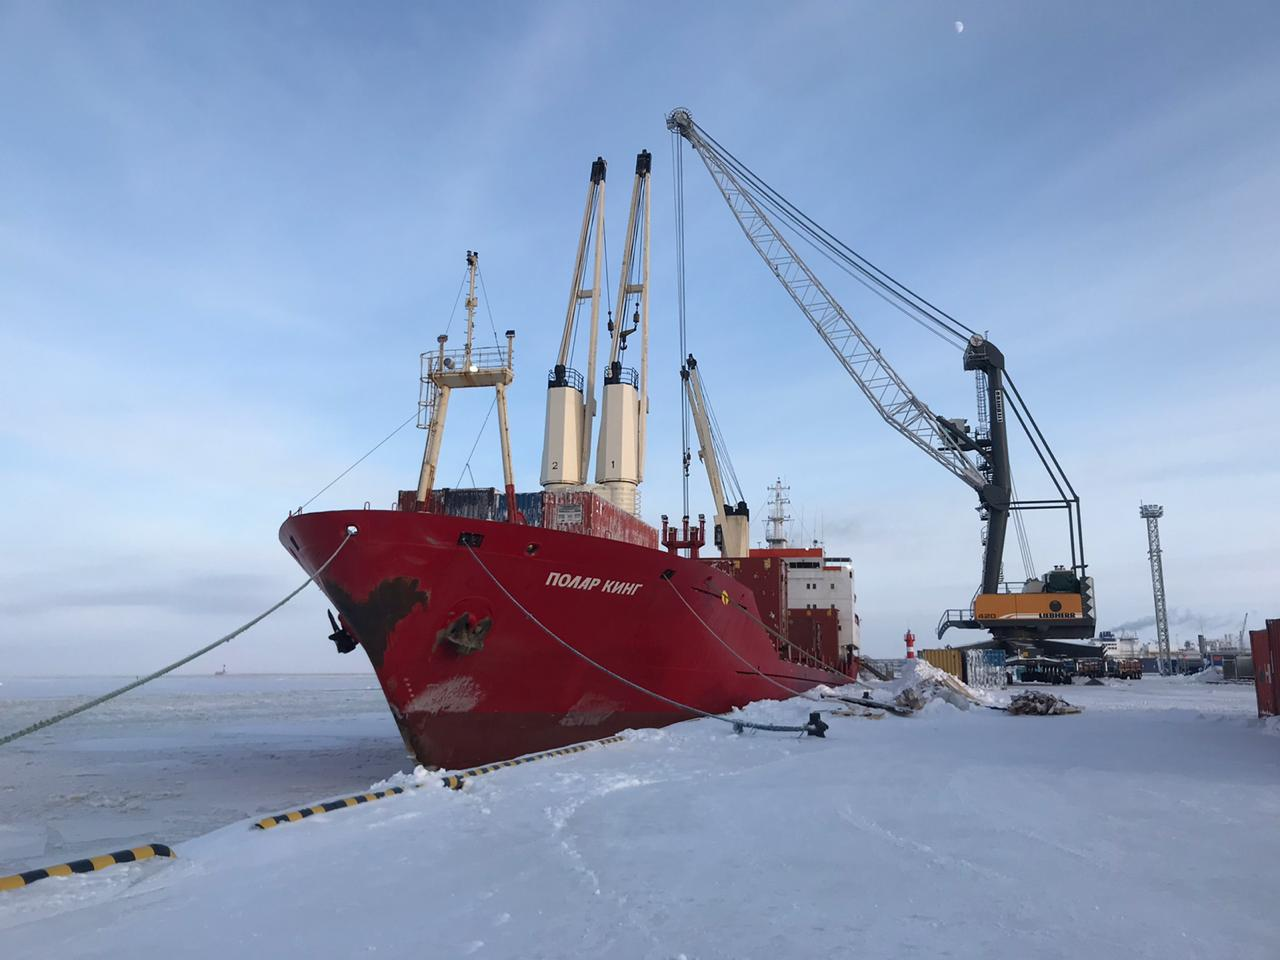 Polar King heading to Arkhangelsk